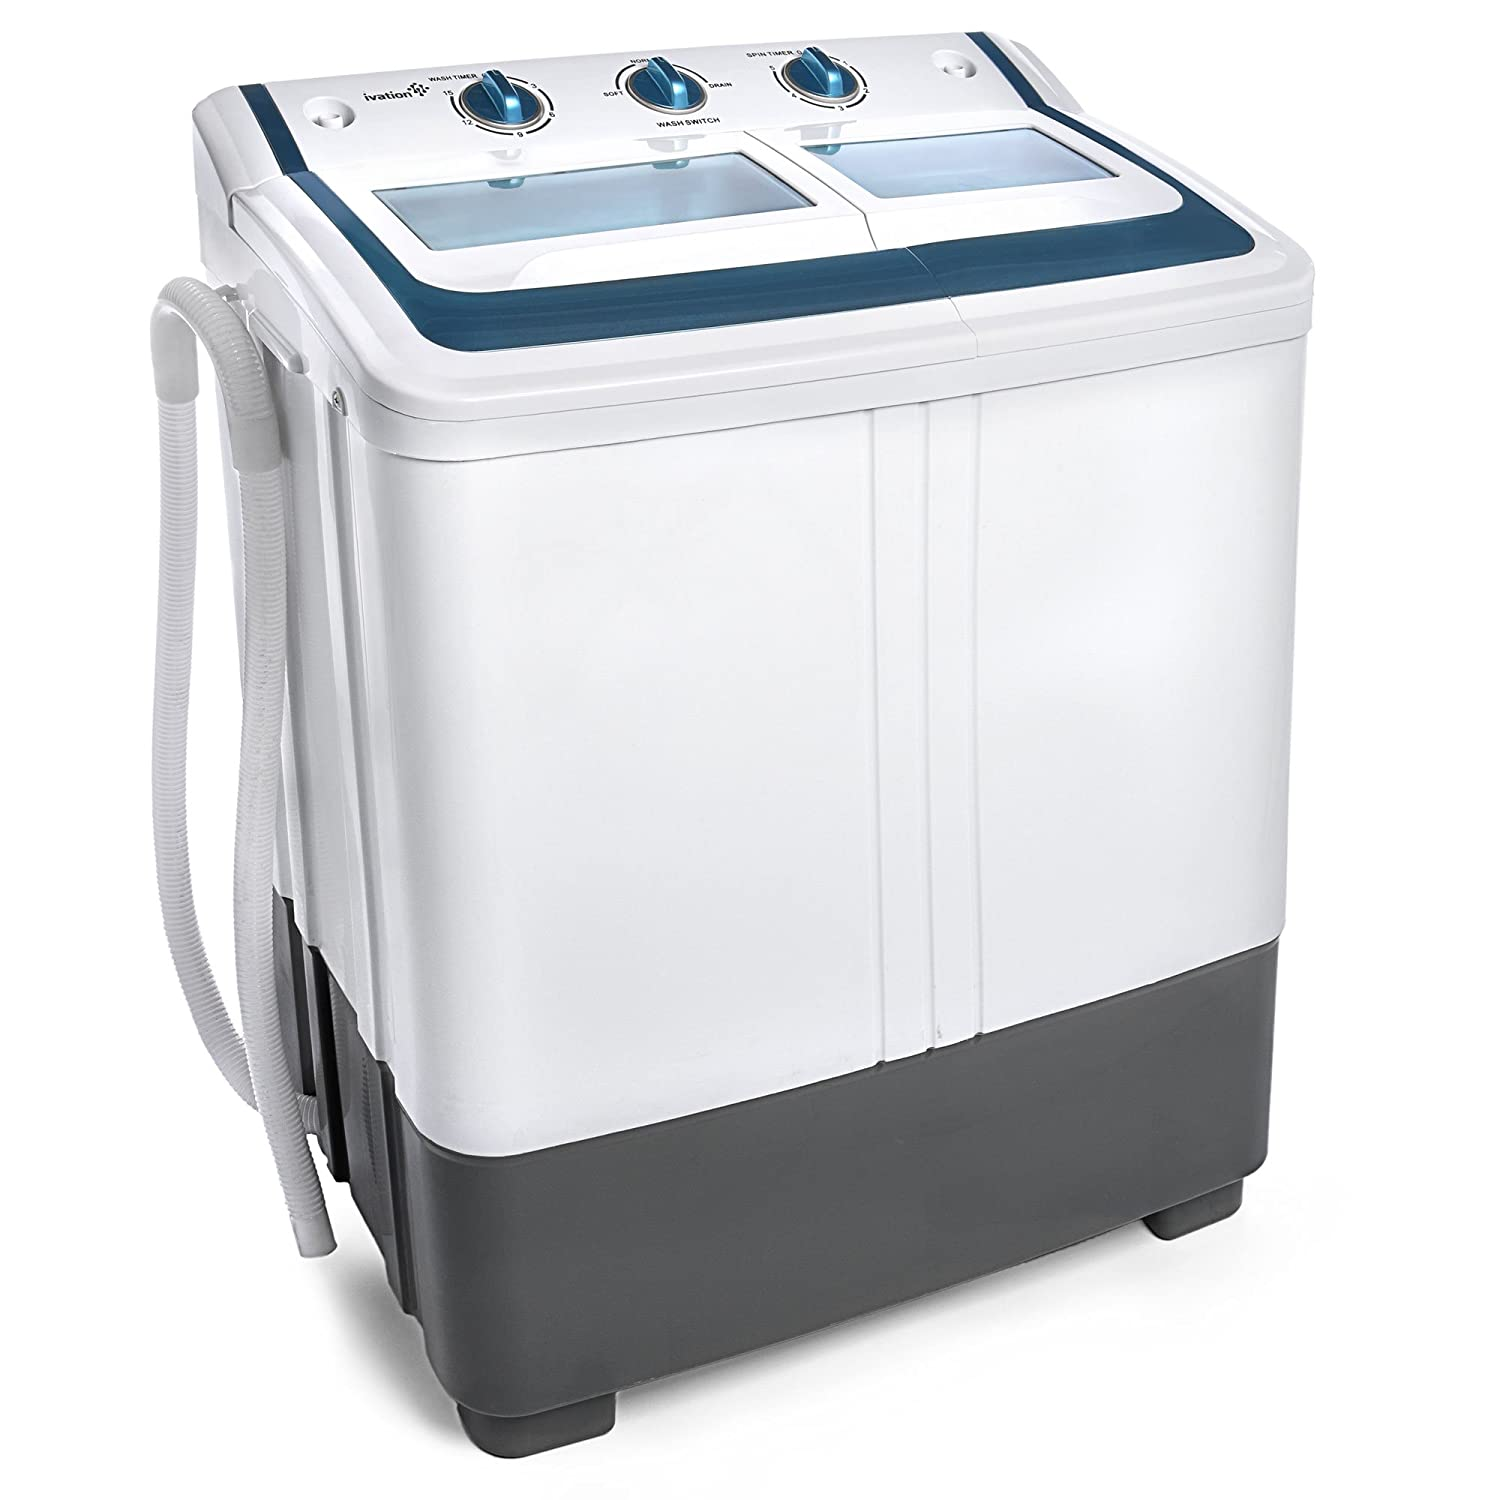 Ivation Small Compact Portable Washing Machine – Twin Tub Washer & Spin with 12.12 Lb. Wash Capacity & 7.7 Lb. Spin Capacity – Includes Drainage Pump & Tube – Ideal for Dorm Rooms, RV & More IVAPWS12WT